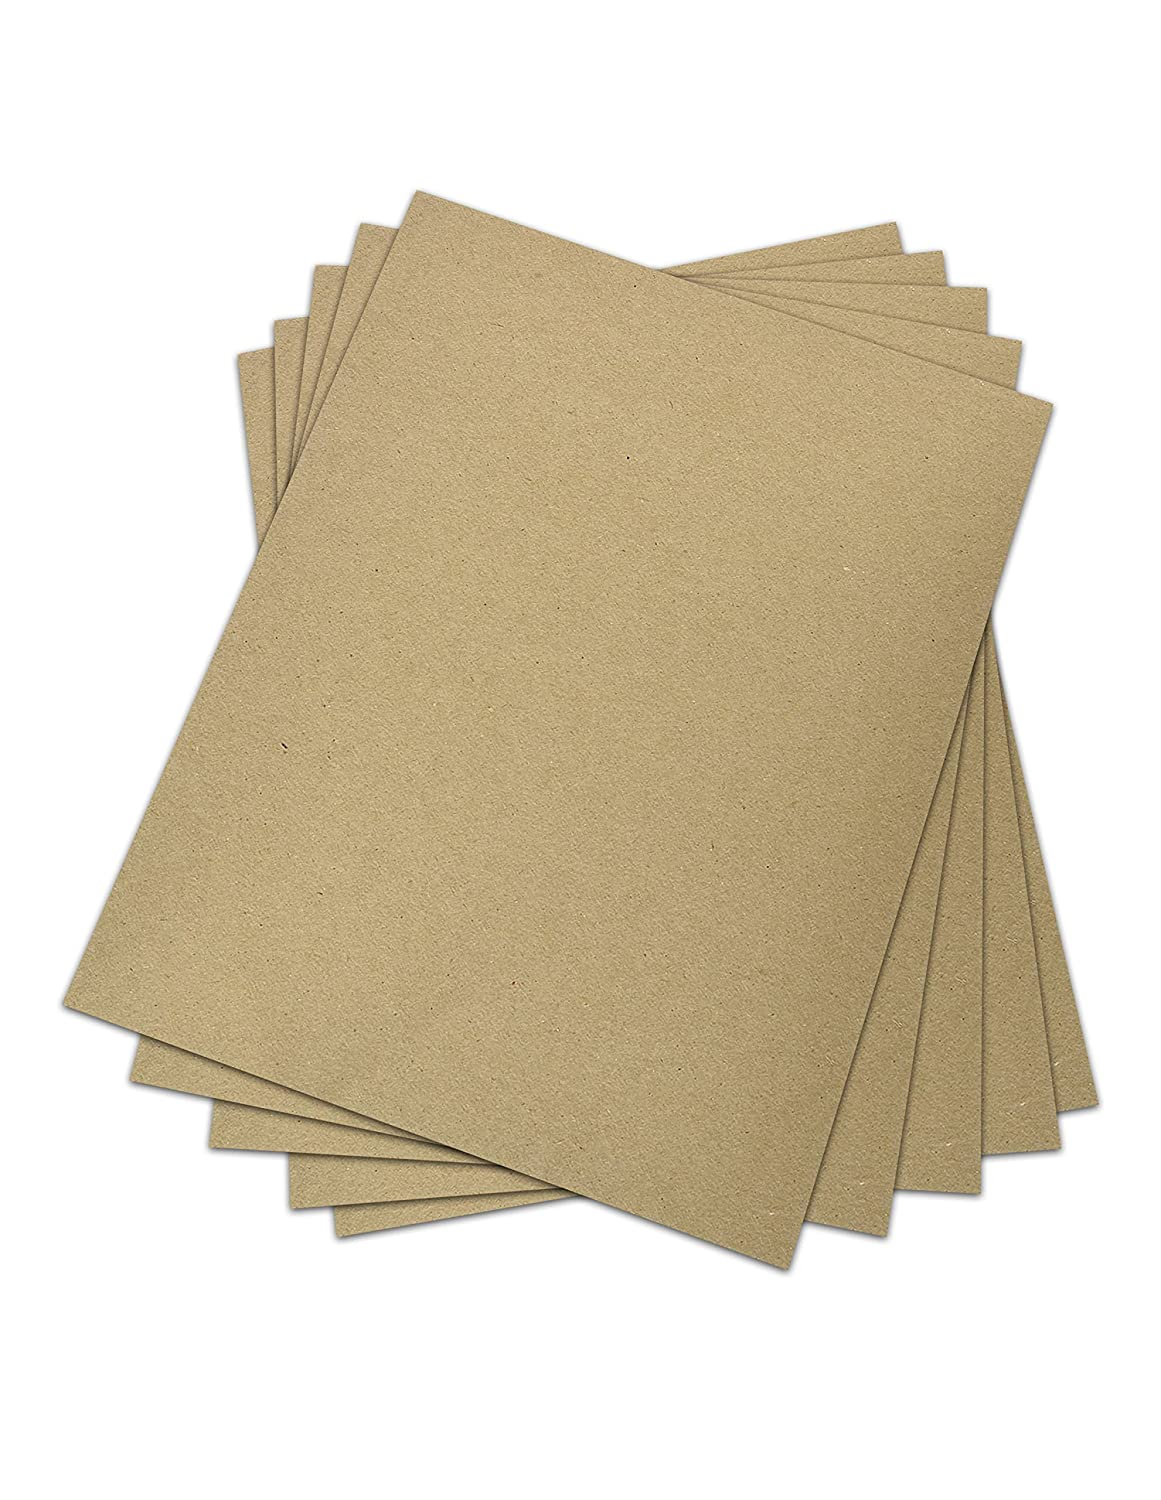 Chipboard - Cardboard Medium Weight Chipboard Sheets - 25 Per Pack. (5 x 7) Superfine Printing Inc.